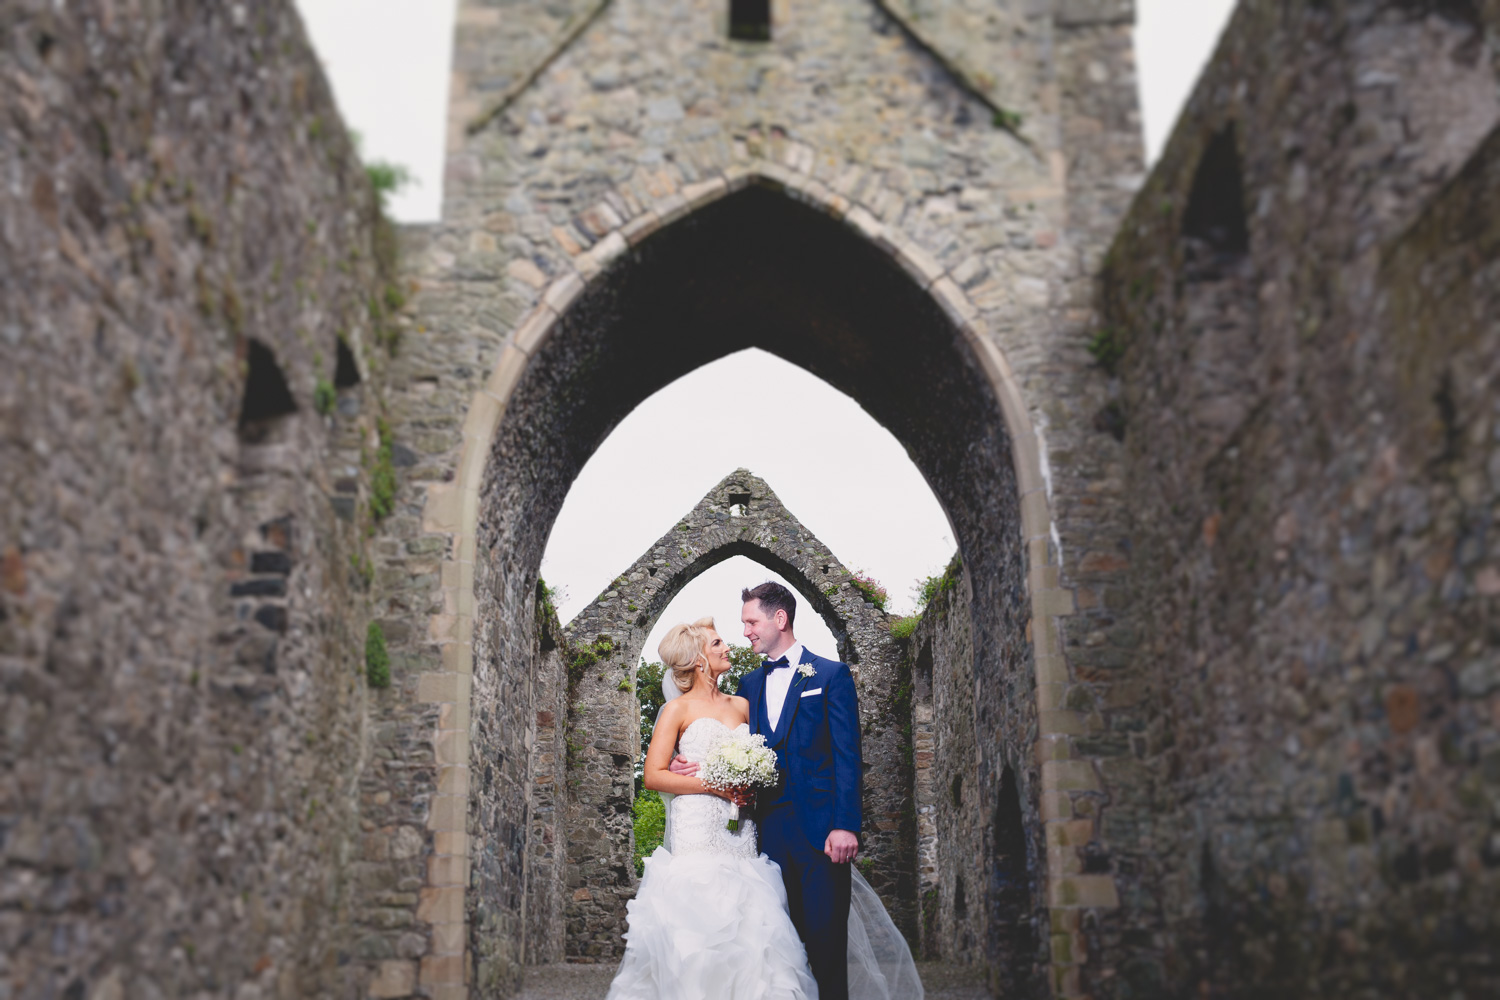 Mark_Barnes_wedding_photographer_Northern_Ireland_Wedding_photography_Carlingford_Four_Seasons_Wedding-36.jpg